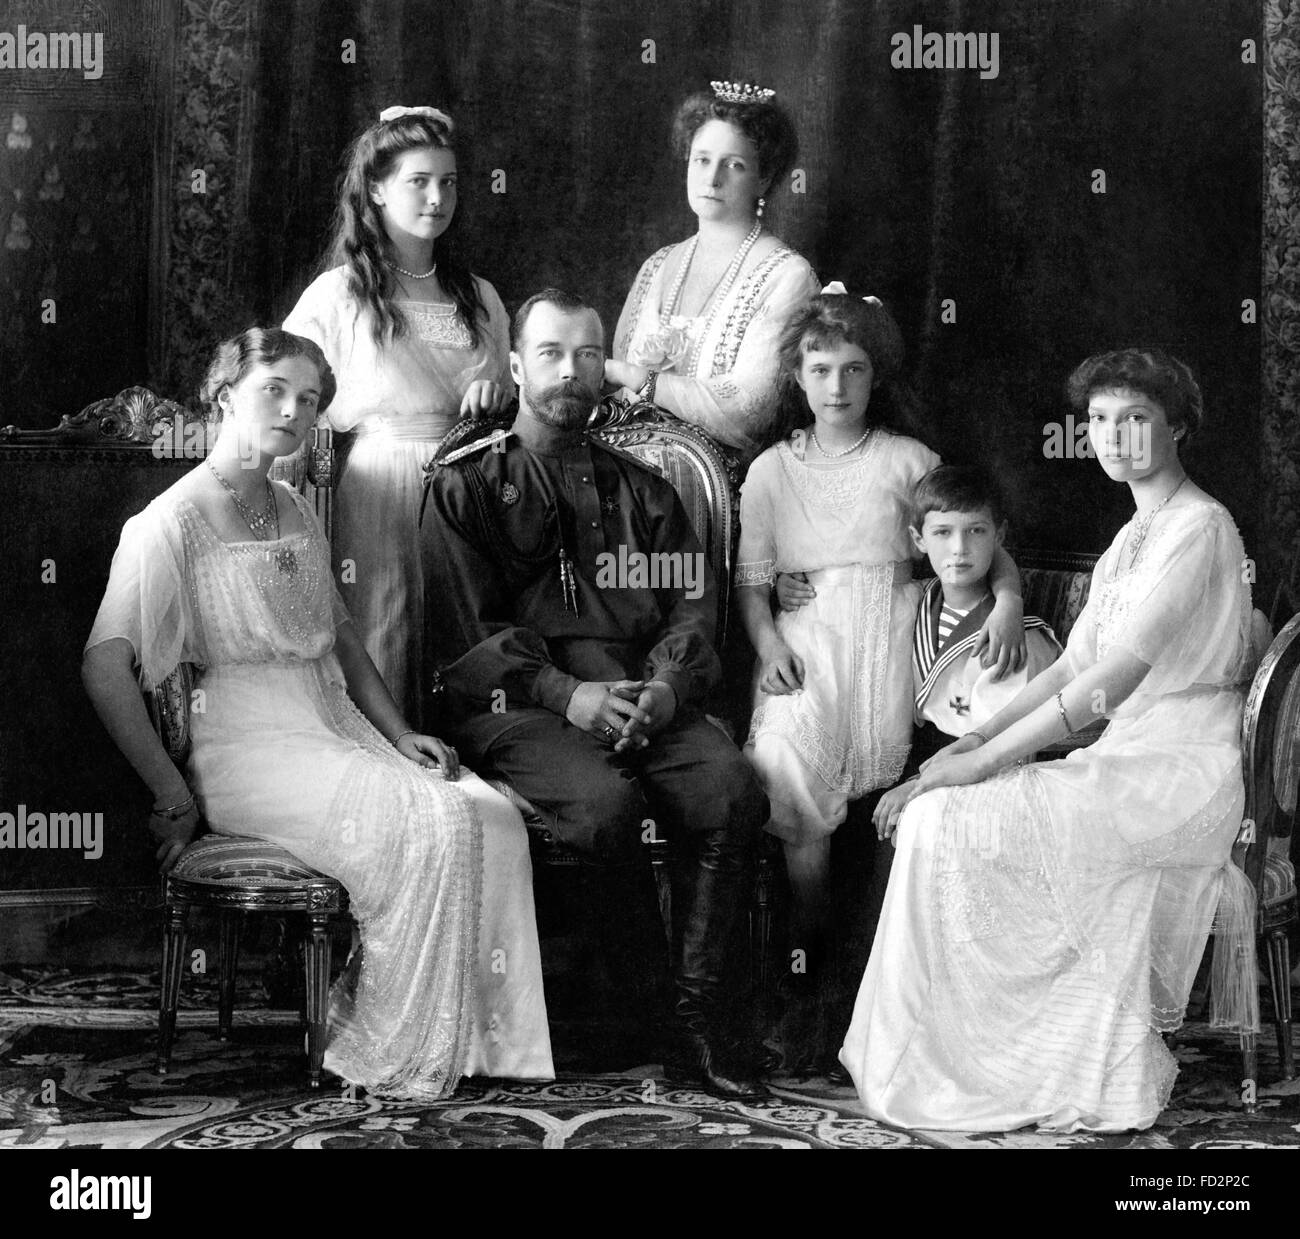 Tsar Nicholas II of Russia with his family, 1913 - Stock Image